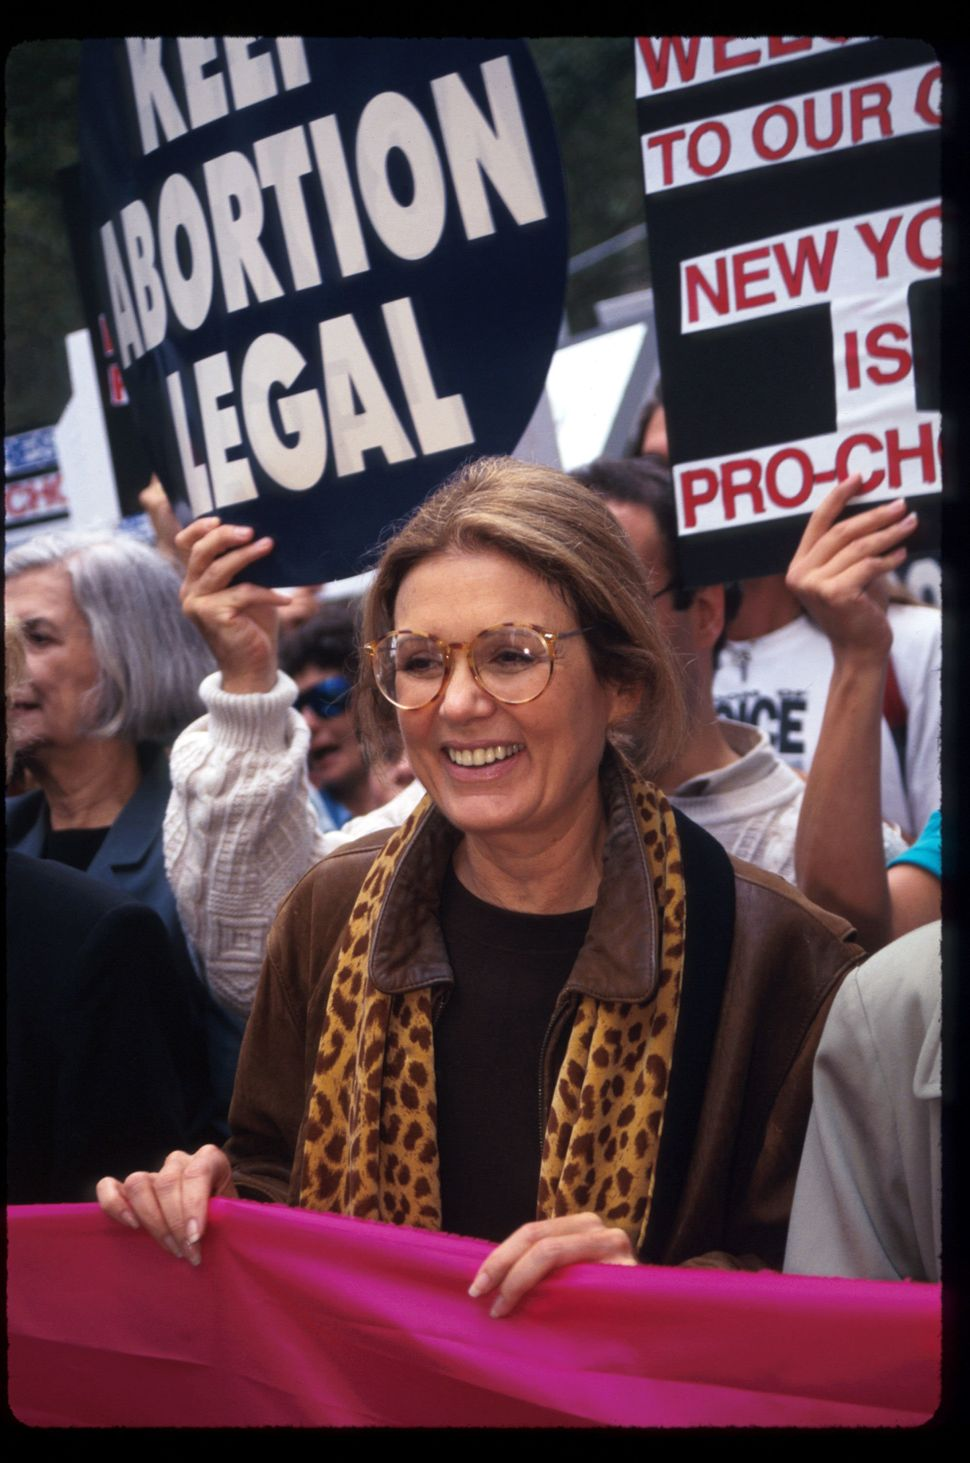 'Ms.' magazine founder Gloria Steinem marches at the Women's Rights rally October 7, 1995 in New York City. The rally protest